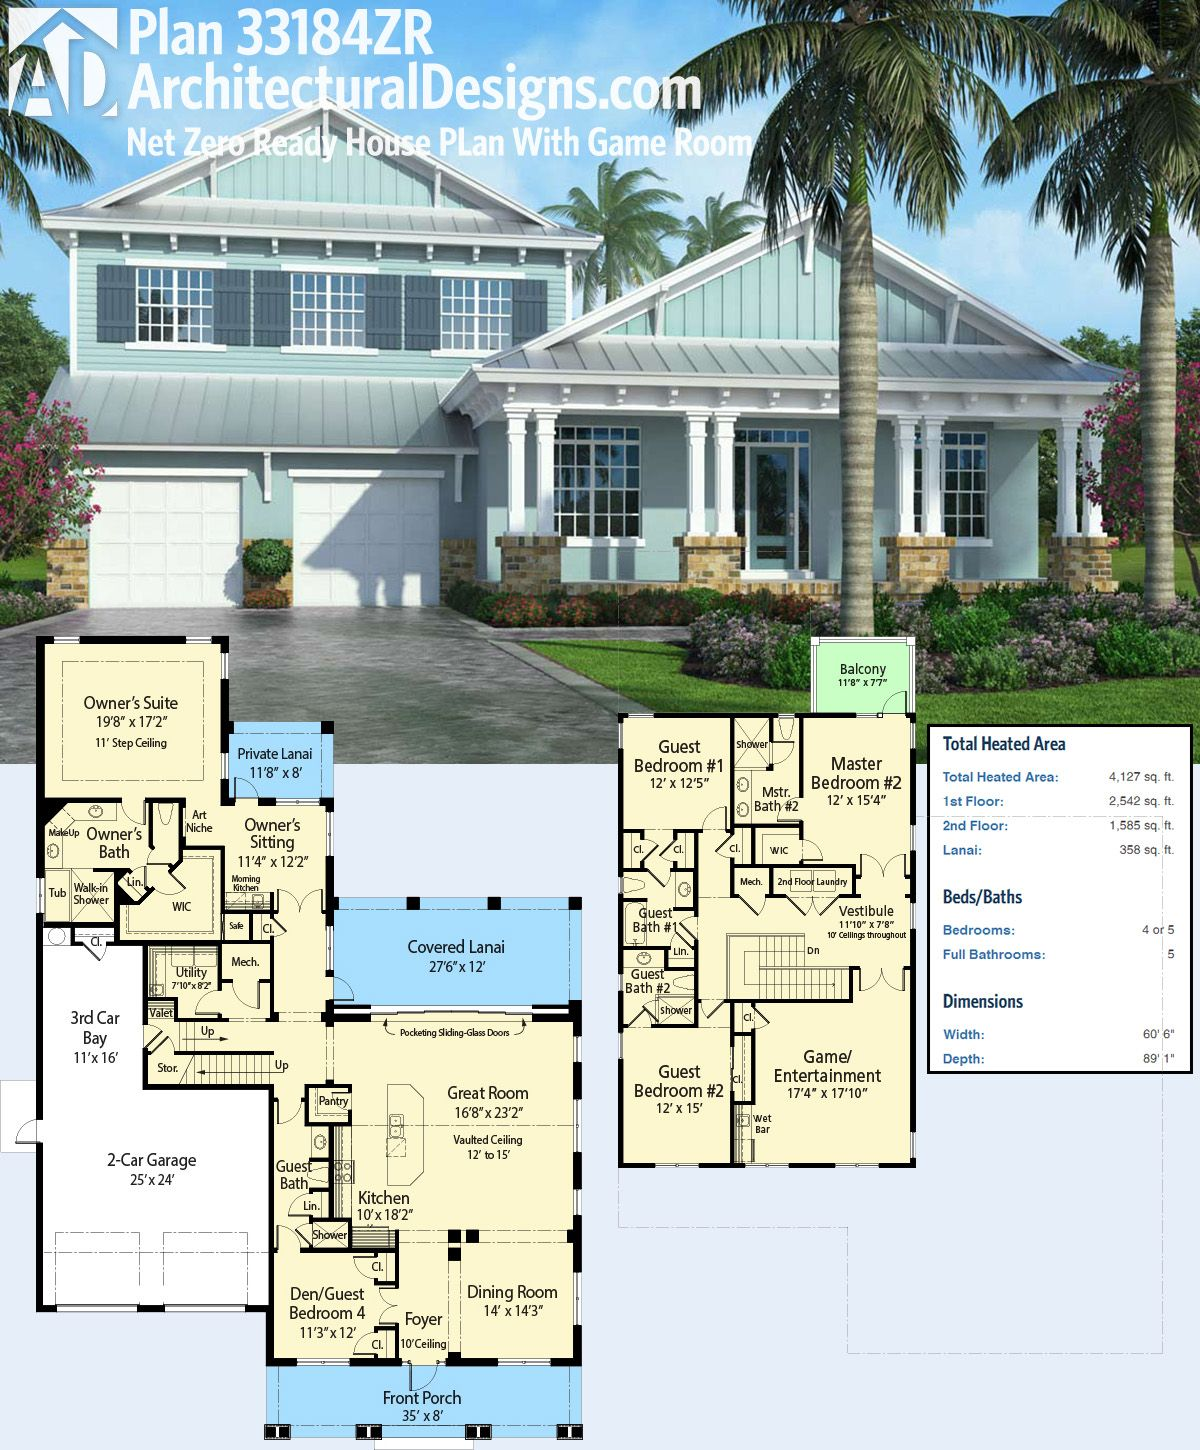 Plan 33184ZR: Net Zero Ready House Plan With Game Room